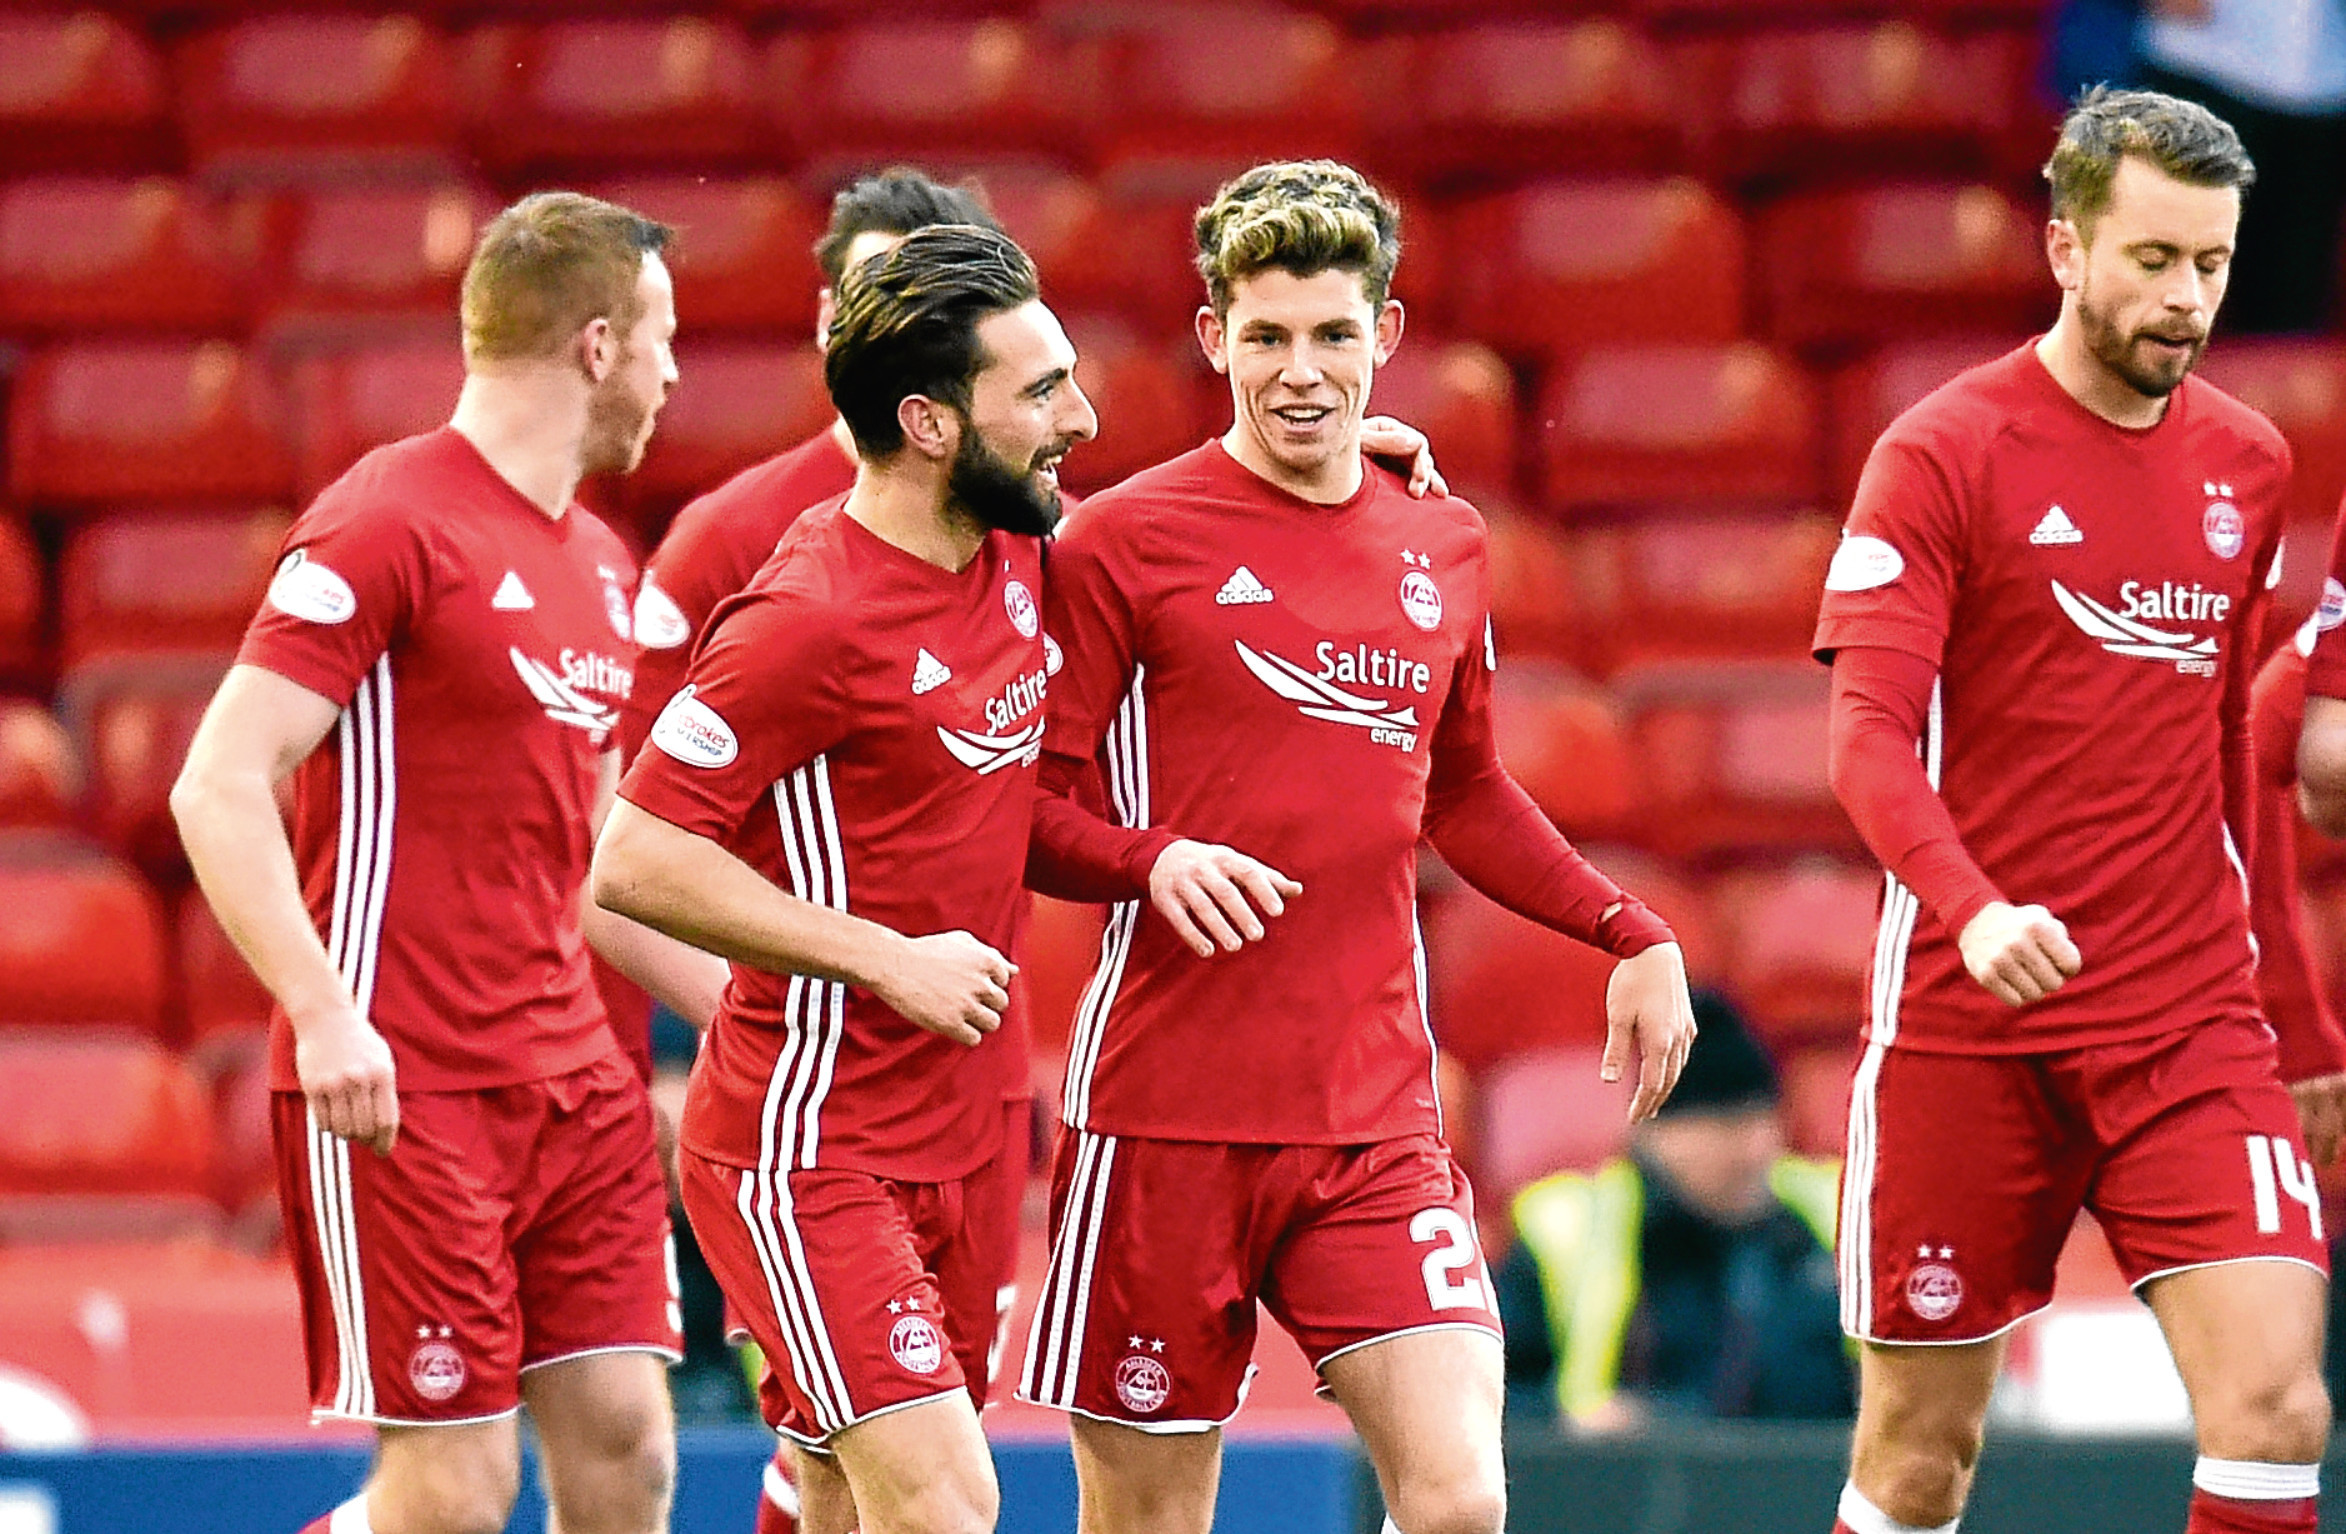 Graeme Shinnie opened the scoring against Kilmarnock in their quarter-final tie on Saturday.